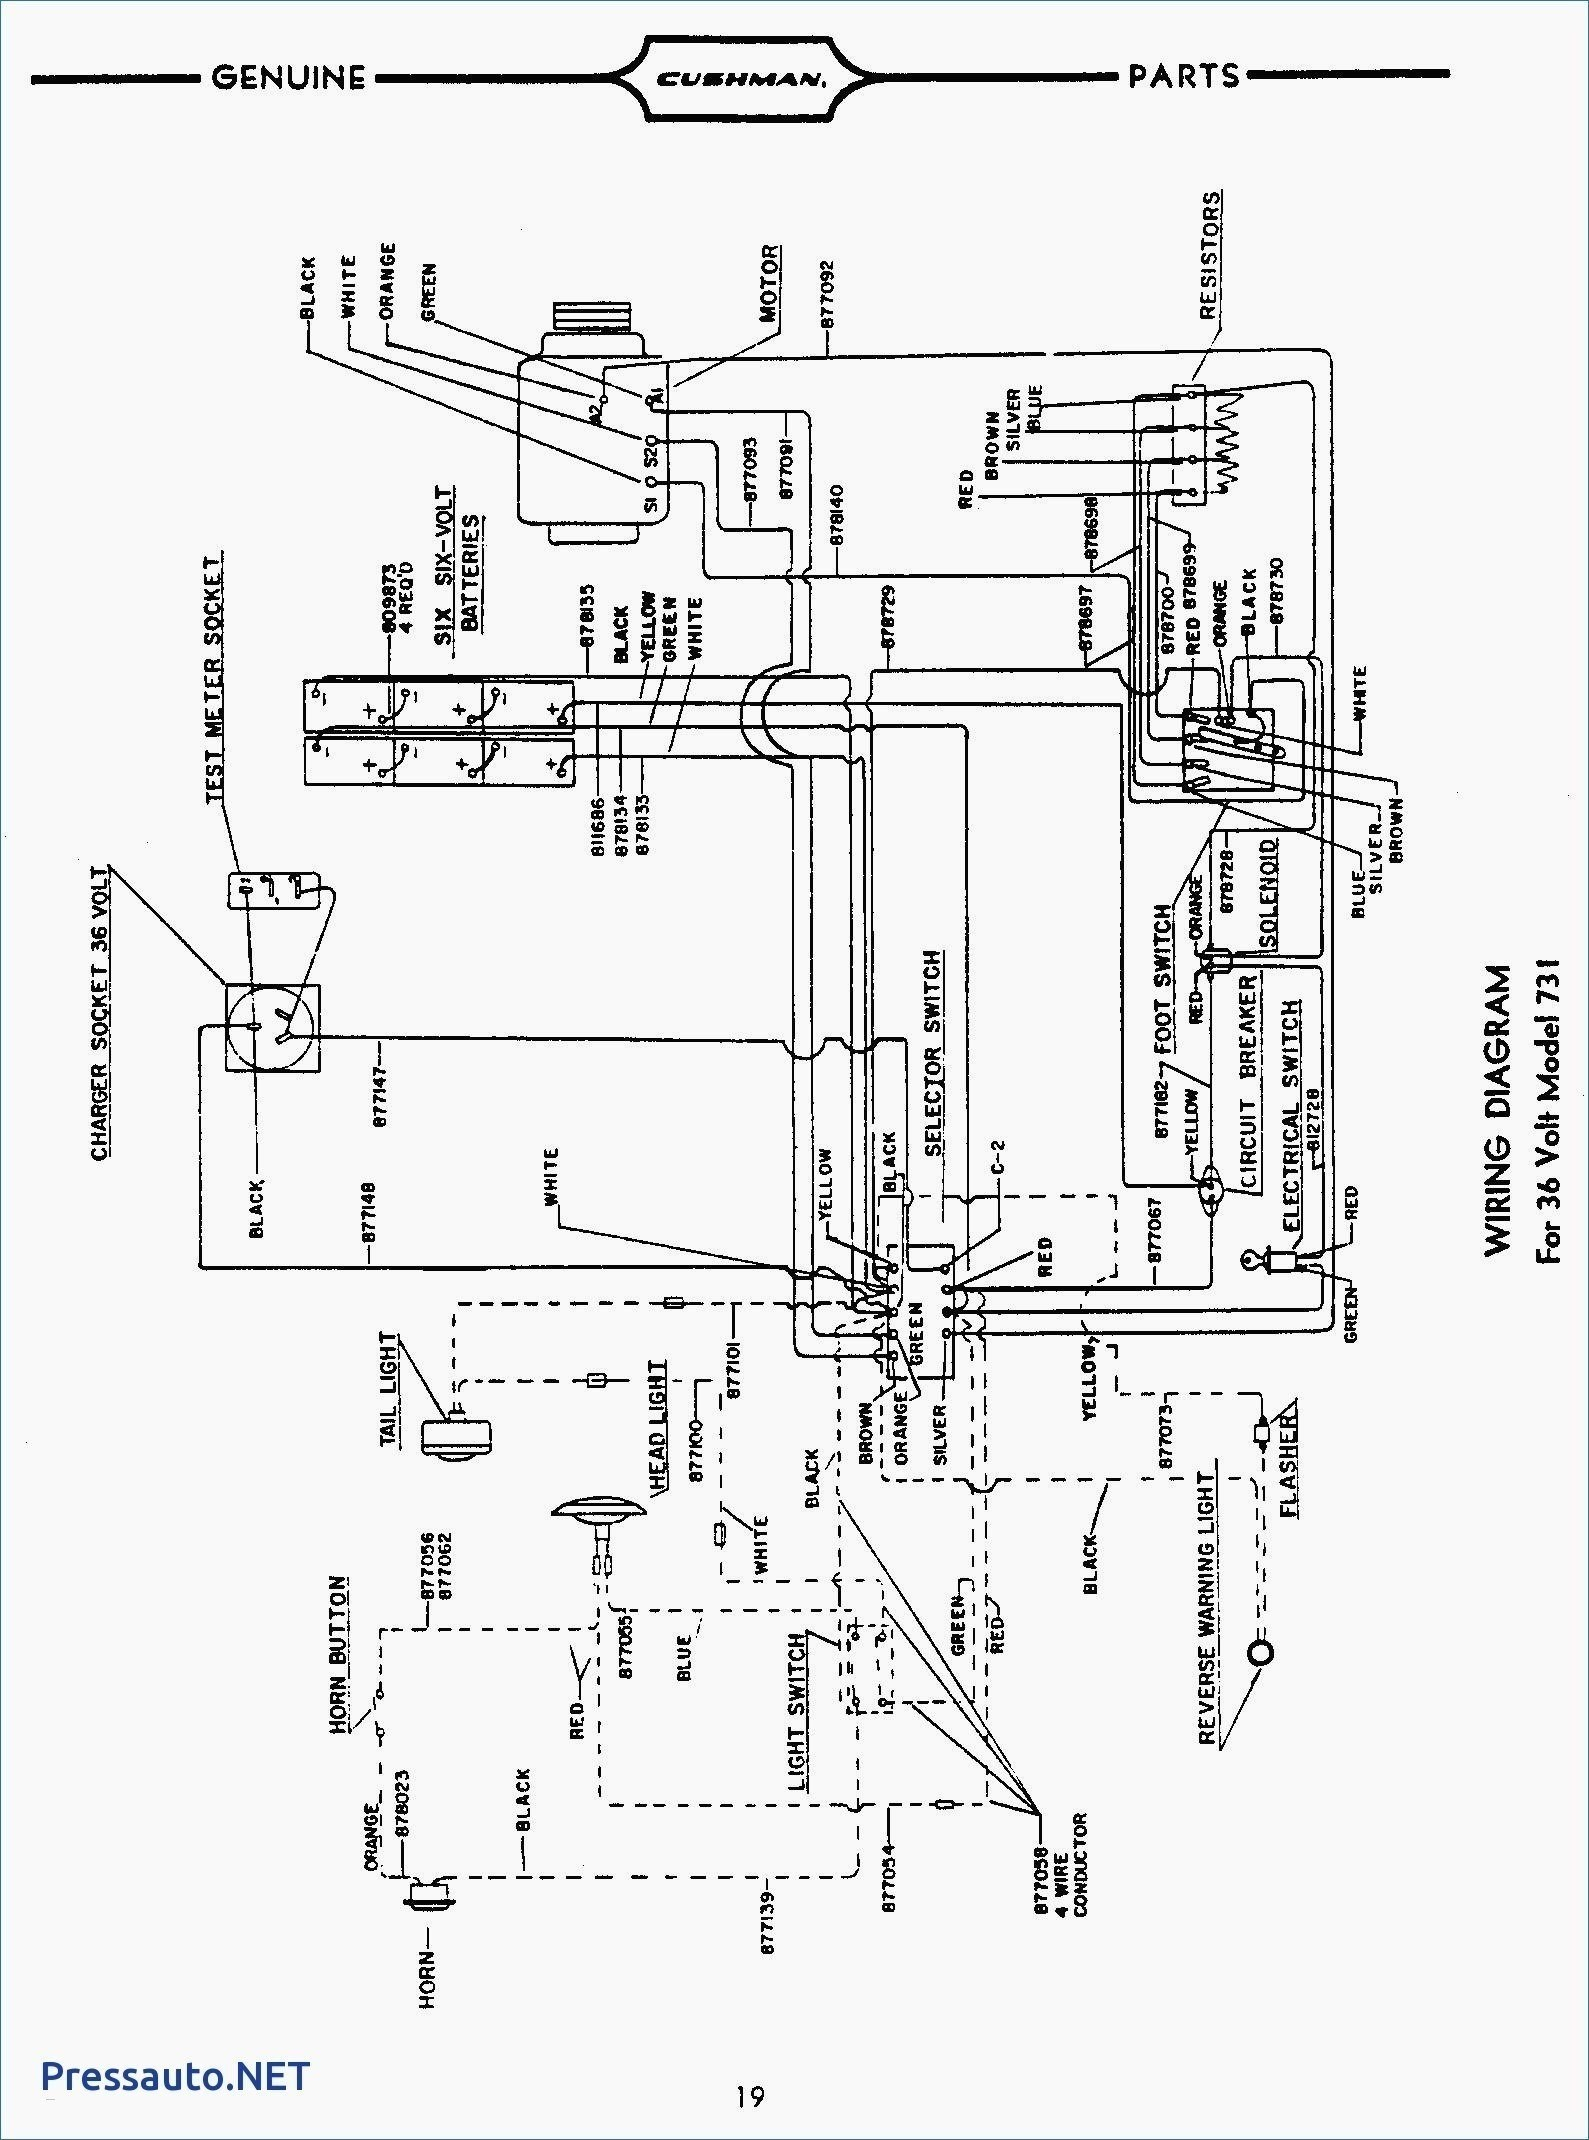 [DIAGRAM_38ZD]  Cushman Wiring Diagrams - Onan Marquis 5000 Wiring Diagram for Wiring  Diagram Schematics | Cushman Hawk Wiring Diagram |  | Wiring Diagram Schematics